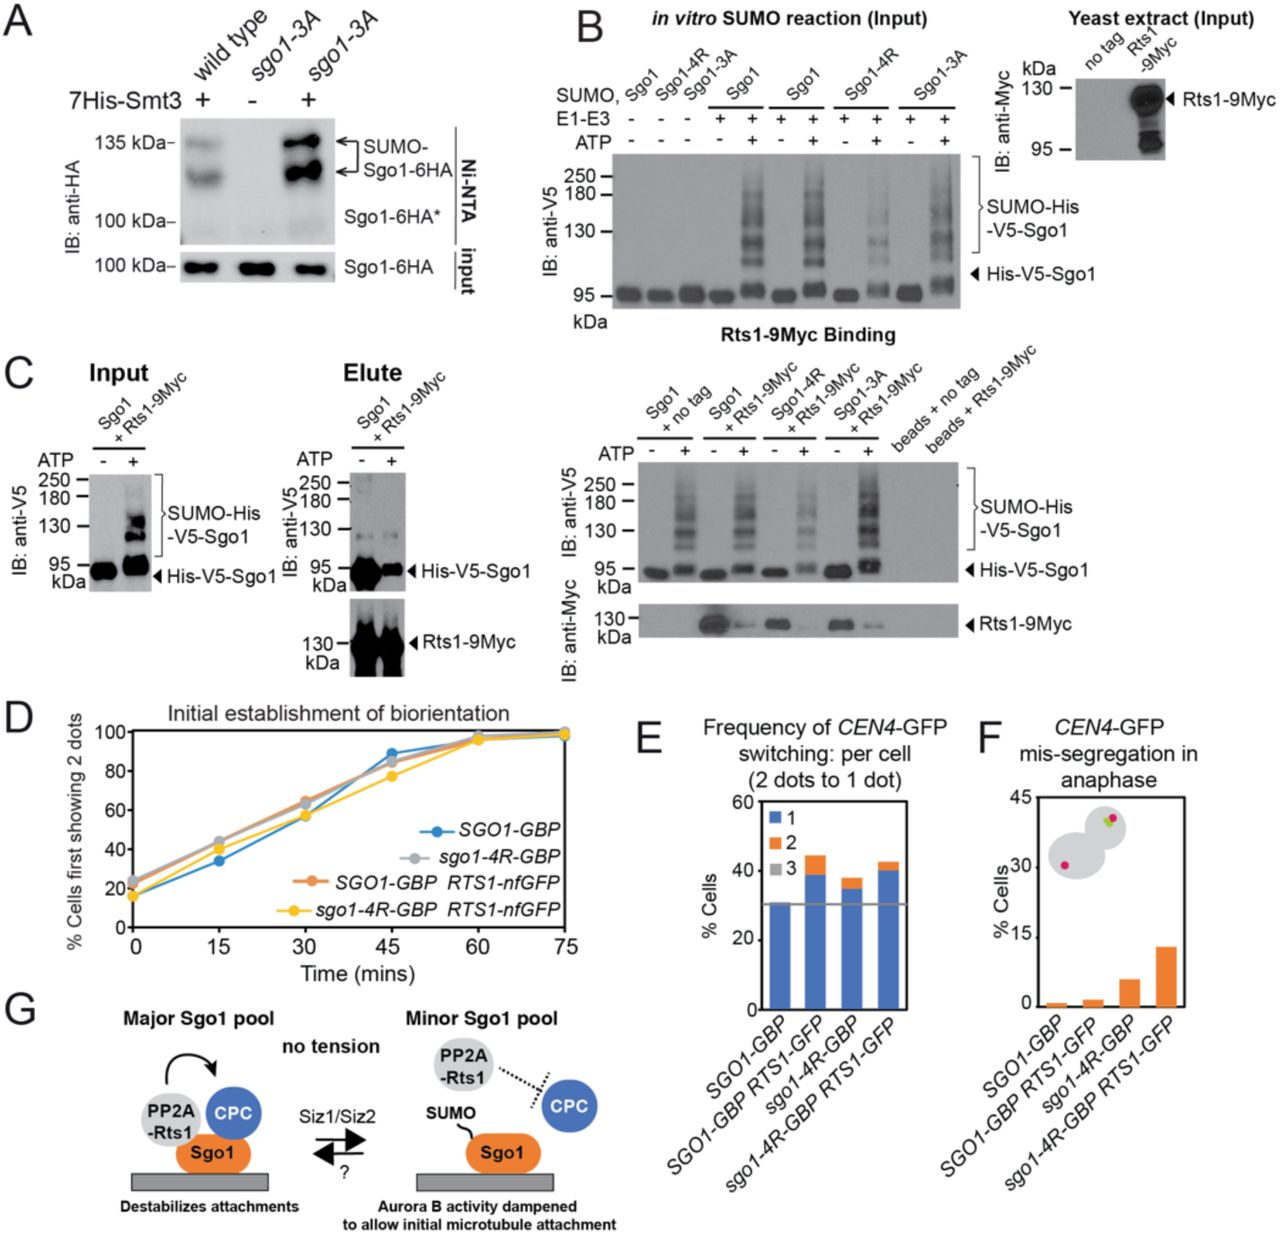 SUMOylation blocks Rts1 binding to Sgo1 and release of this interaction is important for stable biorientation. (A) The Sgo1-3A mutant which fails to associate with PP2A-Rts1 or CPC shows enhanced SUMOylation. In vivo SUMOylation assay was performed on wild type (AMy7655) and sgo1-3A (AMy25988) strains carrying SGO1-6HA . (B) SUMOylated Sgo1 has reduced binding affinity for Rts1. Recombinant V5-tagged Sgo1 was mixed with components of the SUMOylation pathway in the presence or absence of ATP. Anti-V5 antibody coupled <t>Protein</t> G <t>dynabeads</t> were added to the mixture, washed thoroughly and incubated with extract from sgo1 Δ or sgo1 Δ RTS1-9MYC (AMy8832). Levels of Sgo1 and Rts1 bound to beads were probed by anti-V5 and anti-Myc western blotting, respectively. (C) Rts1 preferentially binds to unsumoylated Sgo1. Rts1-9MYC was immunoprecipitated from sgo1 Δ RTS1-9MYC (AMy8832) using anti-MYC antibody coupled to Protein G dynabeads. Beads were incubated with in vitro SUMOylation reaction mixture containing Sgo1. Levels of Sgo1 and Rts1 bound to beads were probed by anti-V5 and anti-Myc western blotting, respectively. (D-F) Biorientation is unstable when Rts1 is tethered to wild type Sgo1 or Sgo1-4R. Strains used contained CEN4-mNeonGreen MET-CDC20 and SPC42-tdTOMATO and were SGO1-GBP (AMy28389), SGO1-GBP RTS1-non-fluorescent GFP (AMy28092), sgo1-4R-GBP (AMy28417) and sgo1-4R-GBP RTS1-non-fluorescent GFP (AMy28416). The assay was performed as described in Figure 5C . (D) Tethering Rts1 to wild type Sgo1 or Sgo1-4R does not affect the initial establishment of biorientation. (E) Increased reassociation of CEN4-mNeonGreen dots was observed when Rts1 was tethered to wild type Sgo1 or Sgo1-4R. (F) Mis-segregation is only modestly increased when Rts1 is tethered to wild type Sgo1 or Sgo1-4R. (G) Schematic model of how Sgo1 SUMOylation may alter the kinase-phosphatase balance to initiate error correction silencing and promote anaphase onset. For details, see text